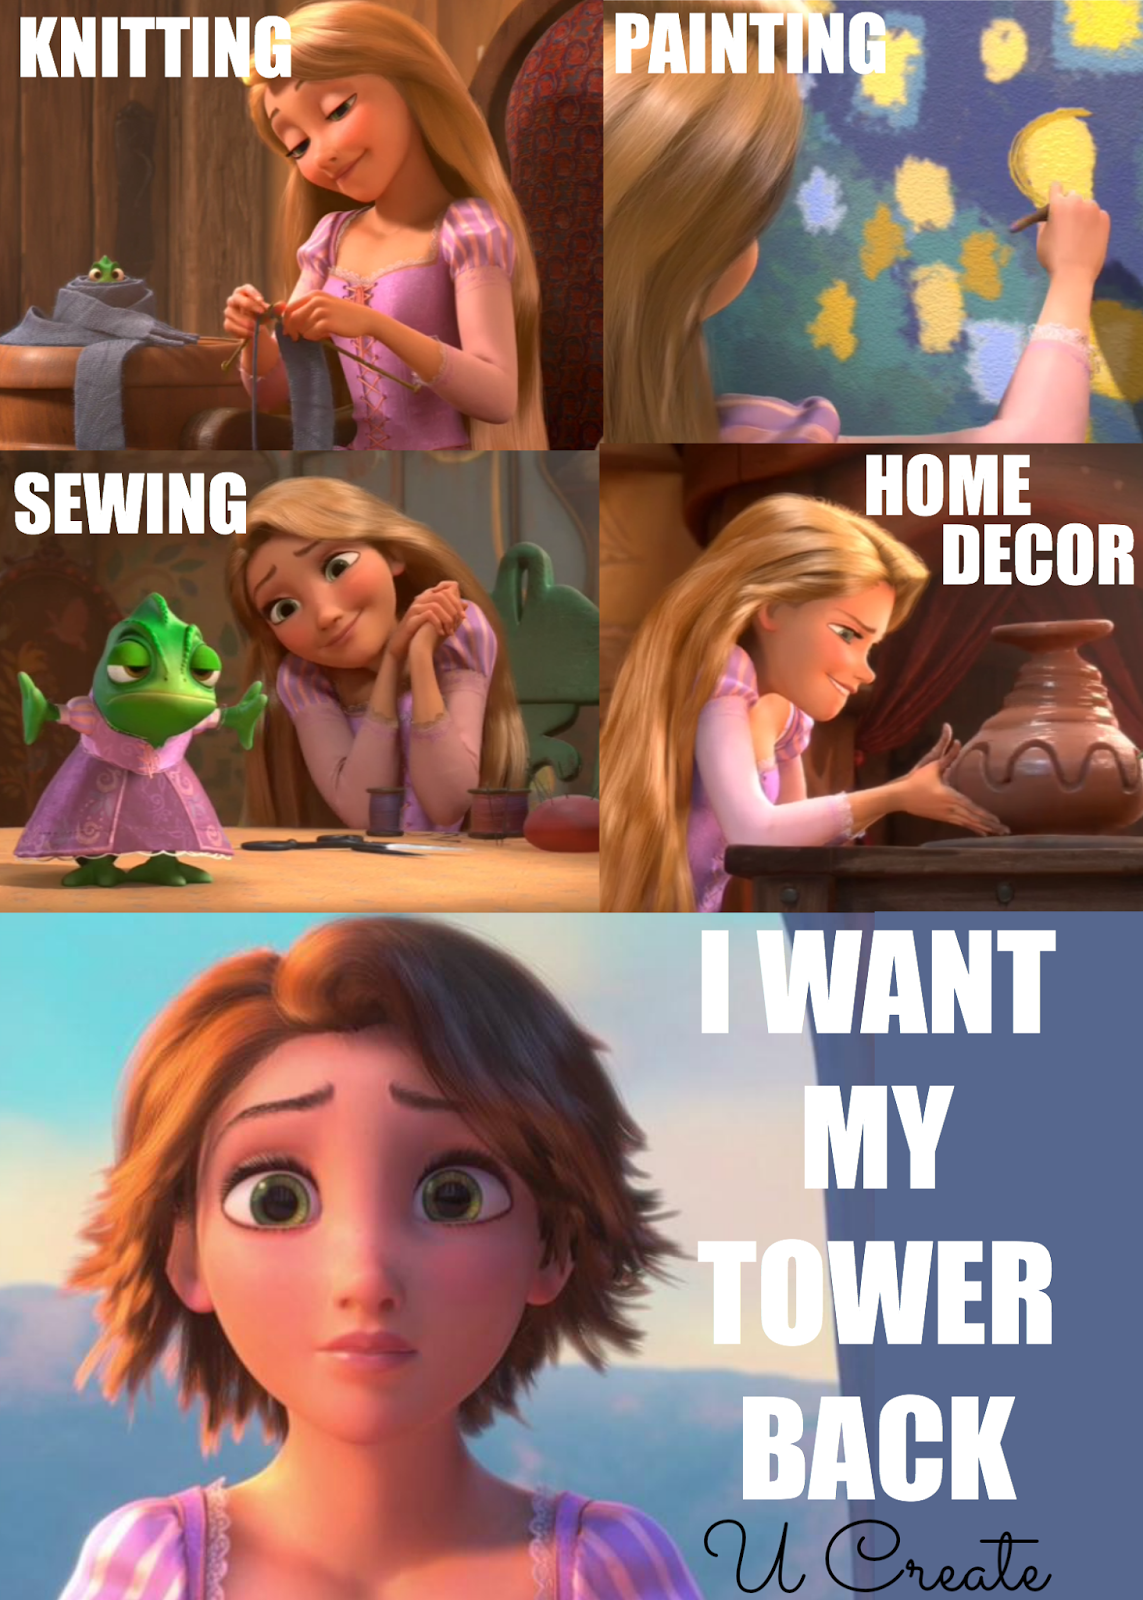 The ultimate DIY princess - lots of funny craft memes by U Create